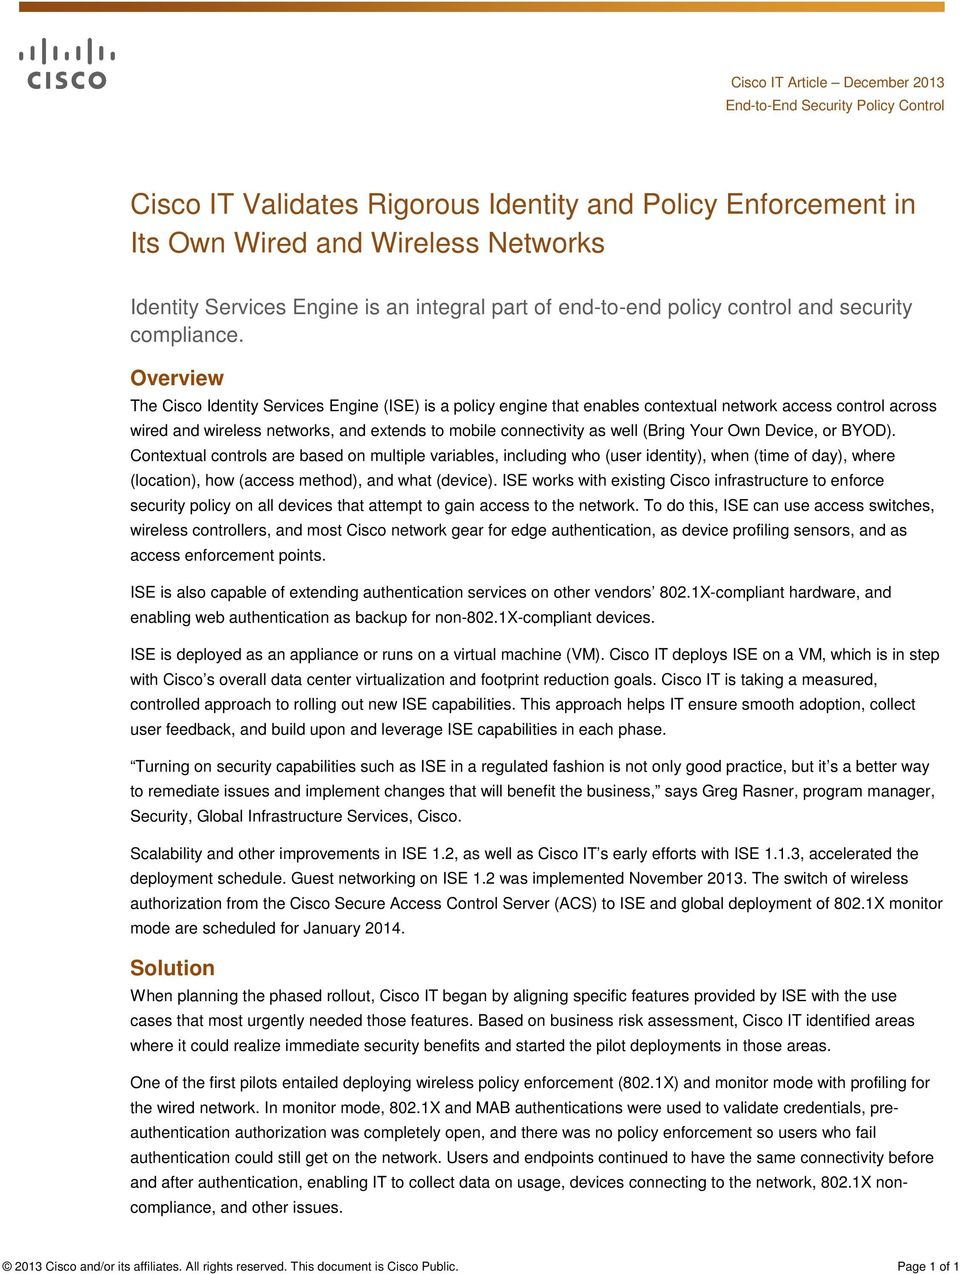 Overview The Cisco Identity Services Engine (ISE) is a policy engine that enables contextual network access control across wired and wireless networks, and extends to mobile connectivity as well